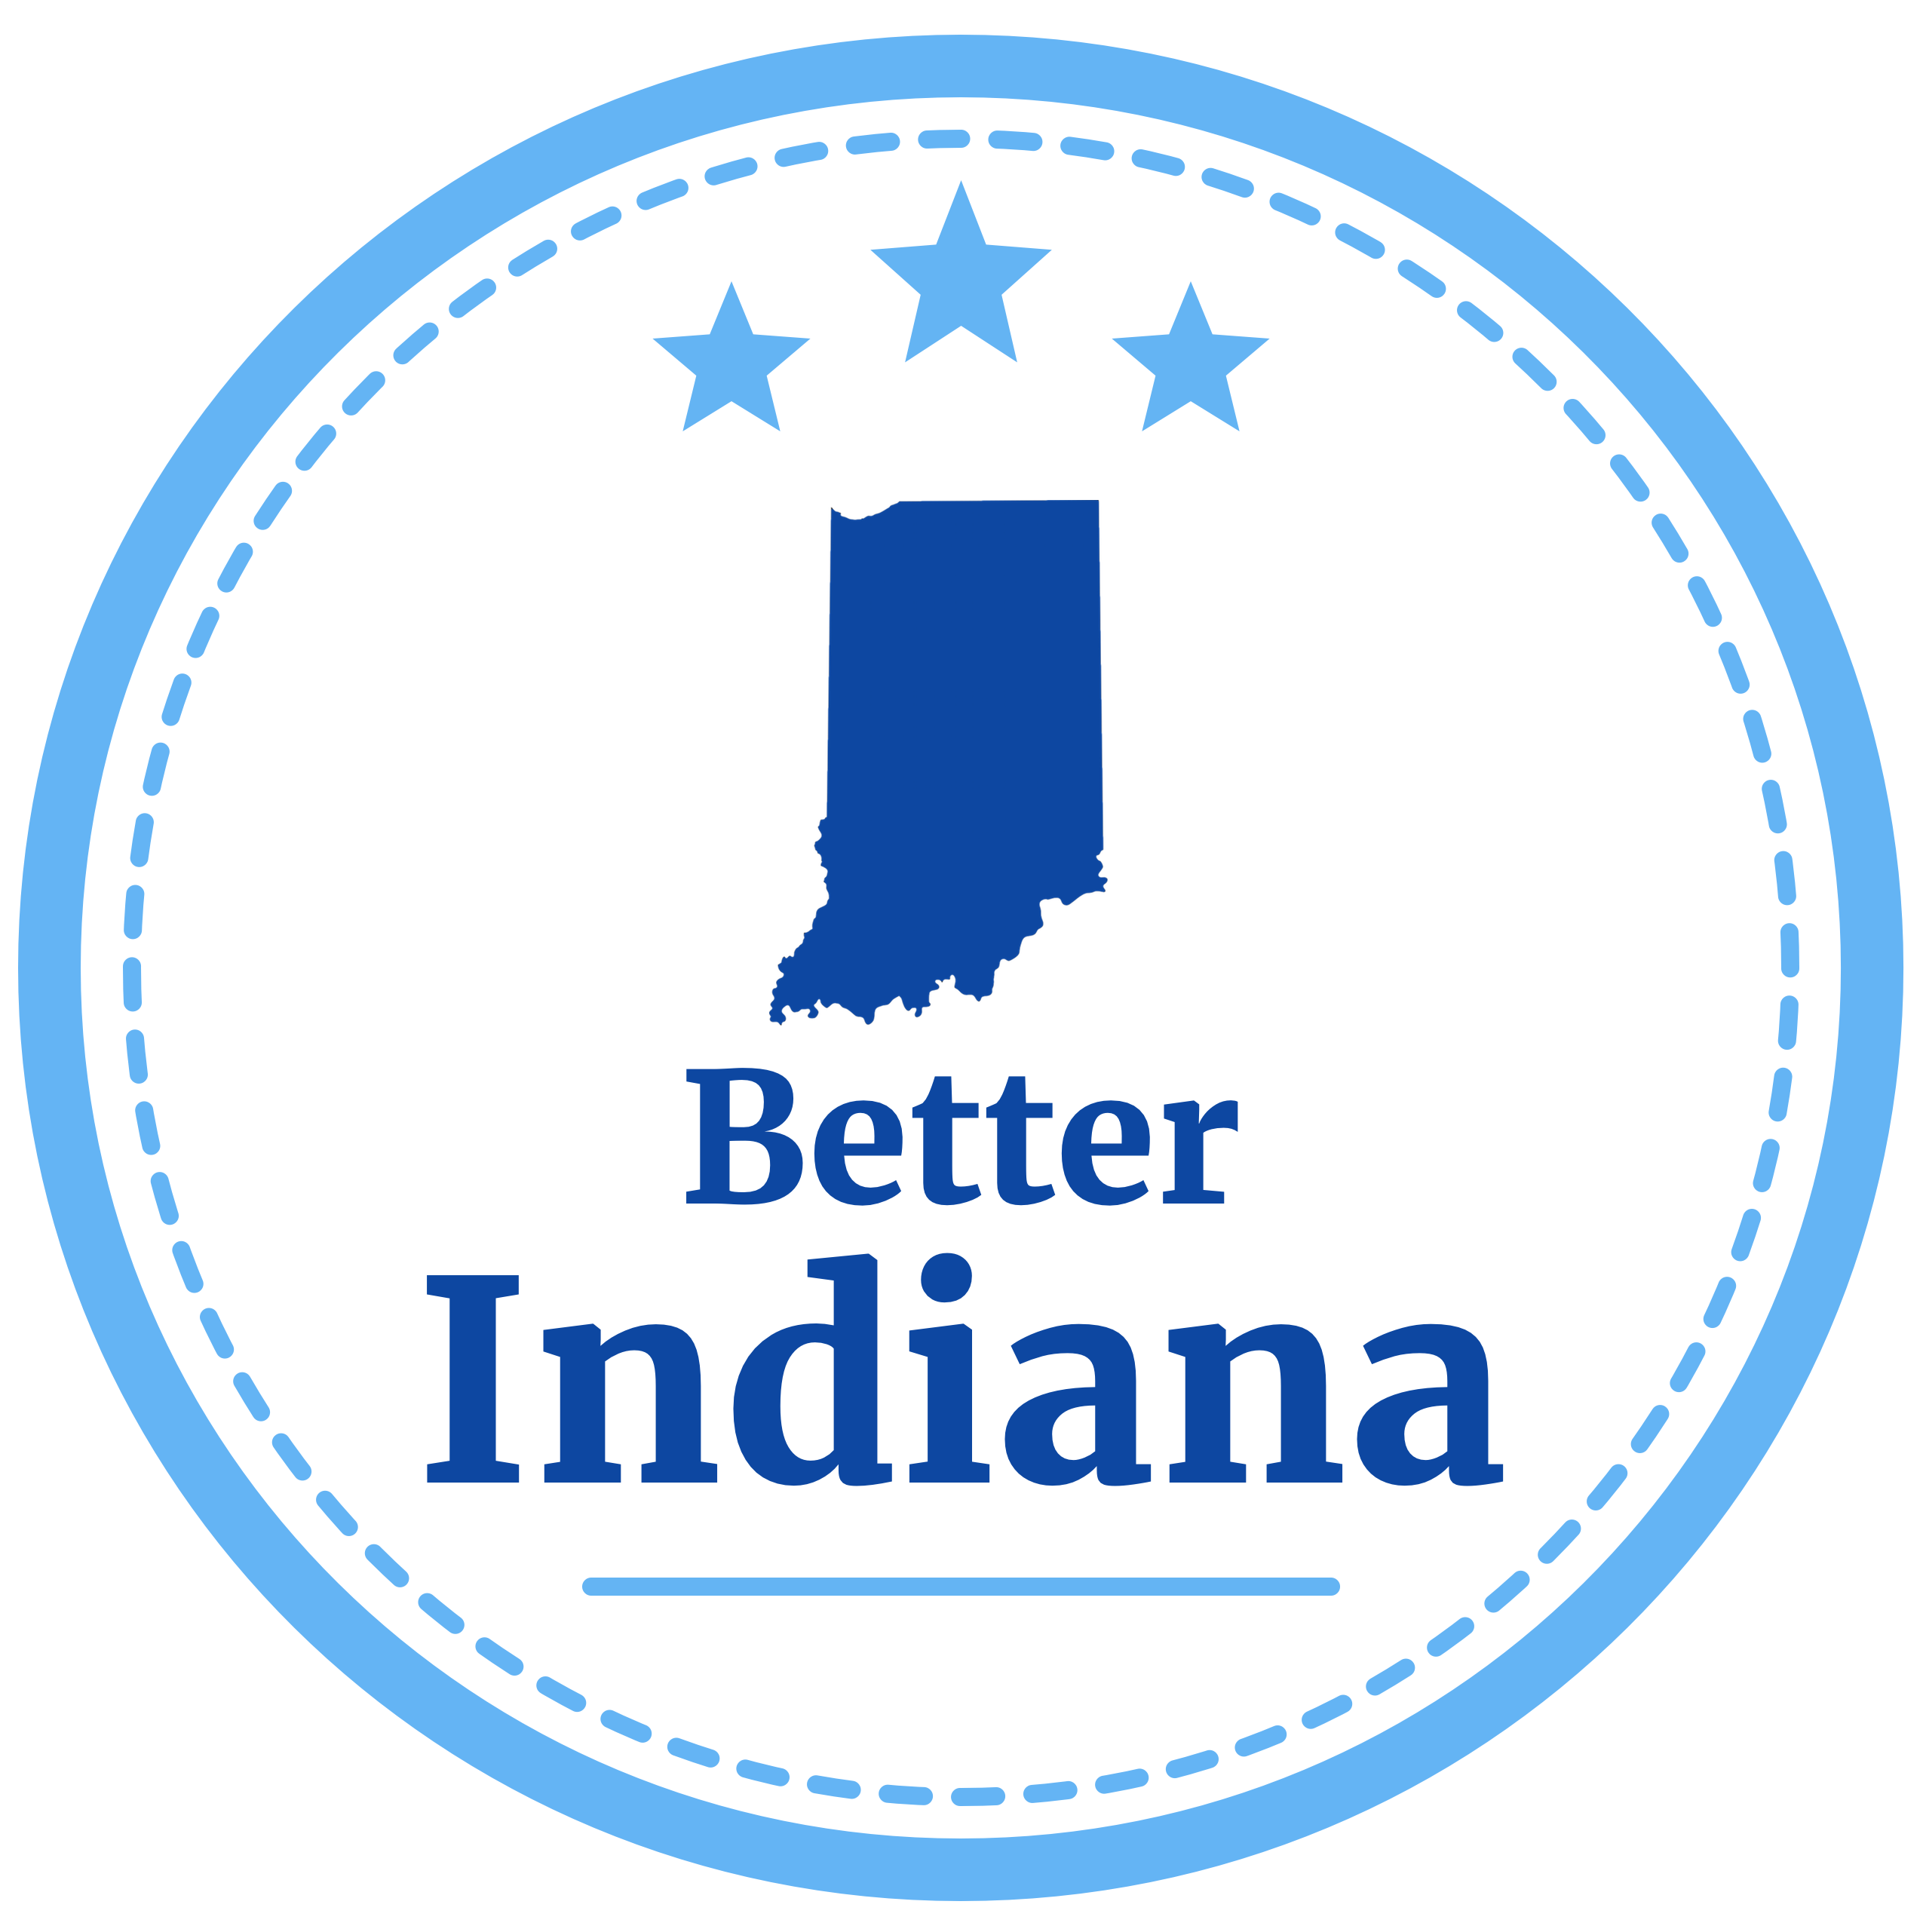 Better Indiana